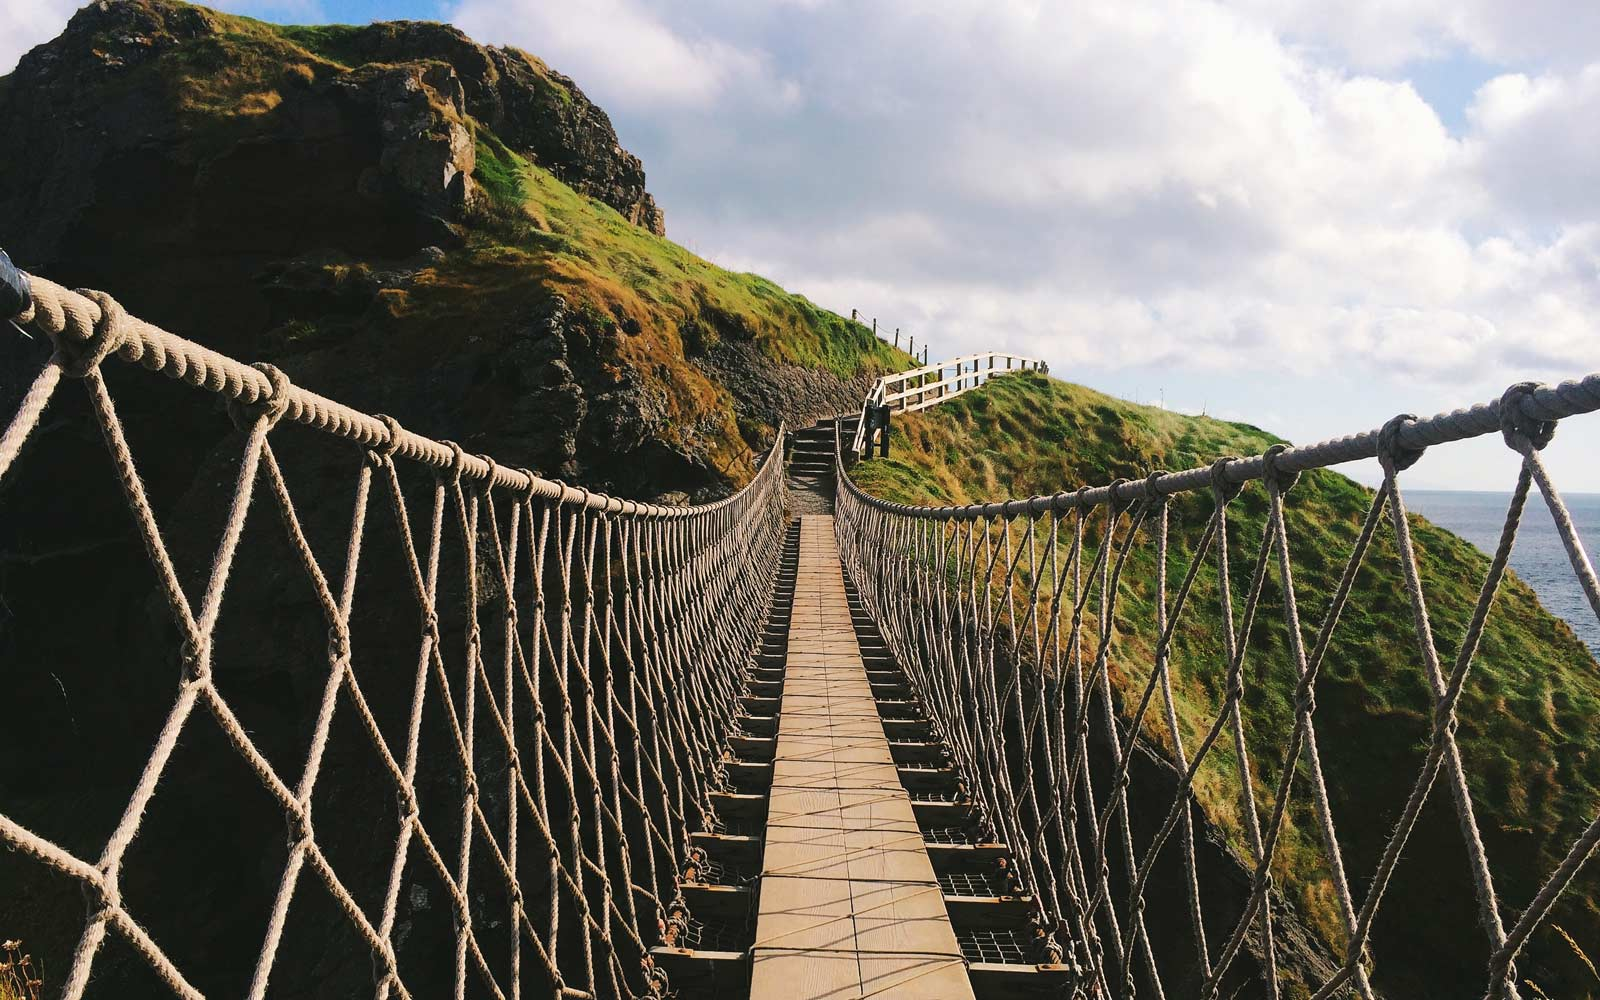 The Carrick-a-Rede Rope Bridge Is So Popular You Need a Ticket to Cross